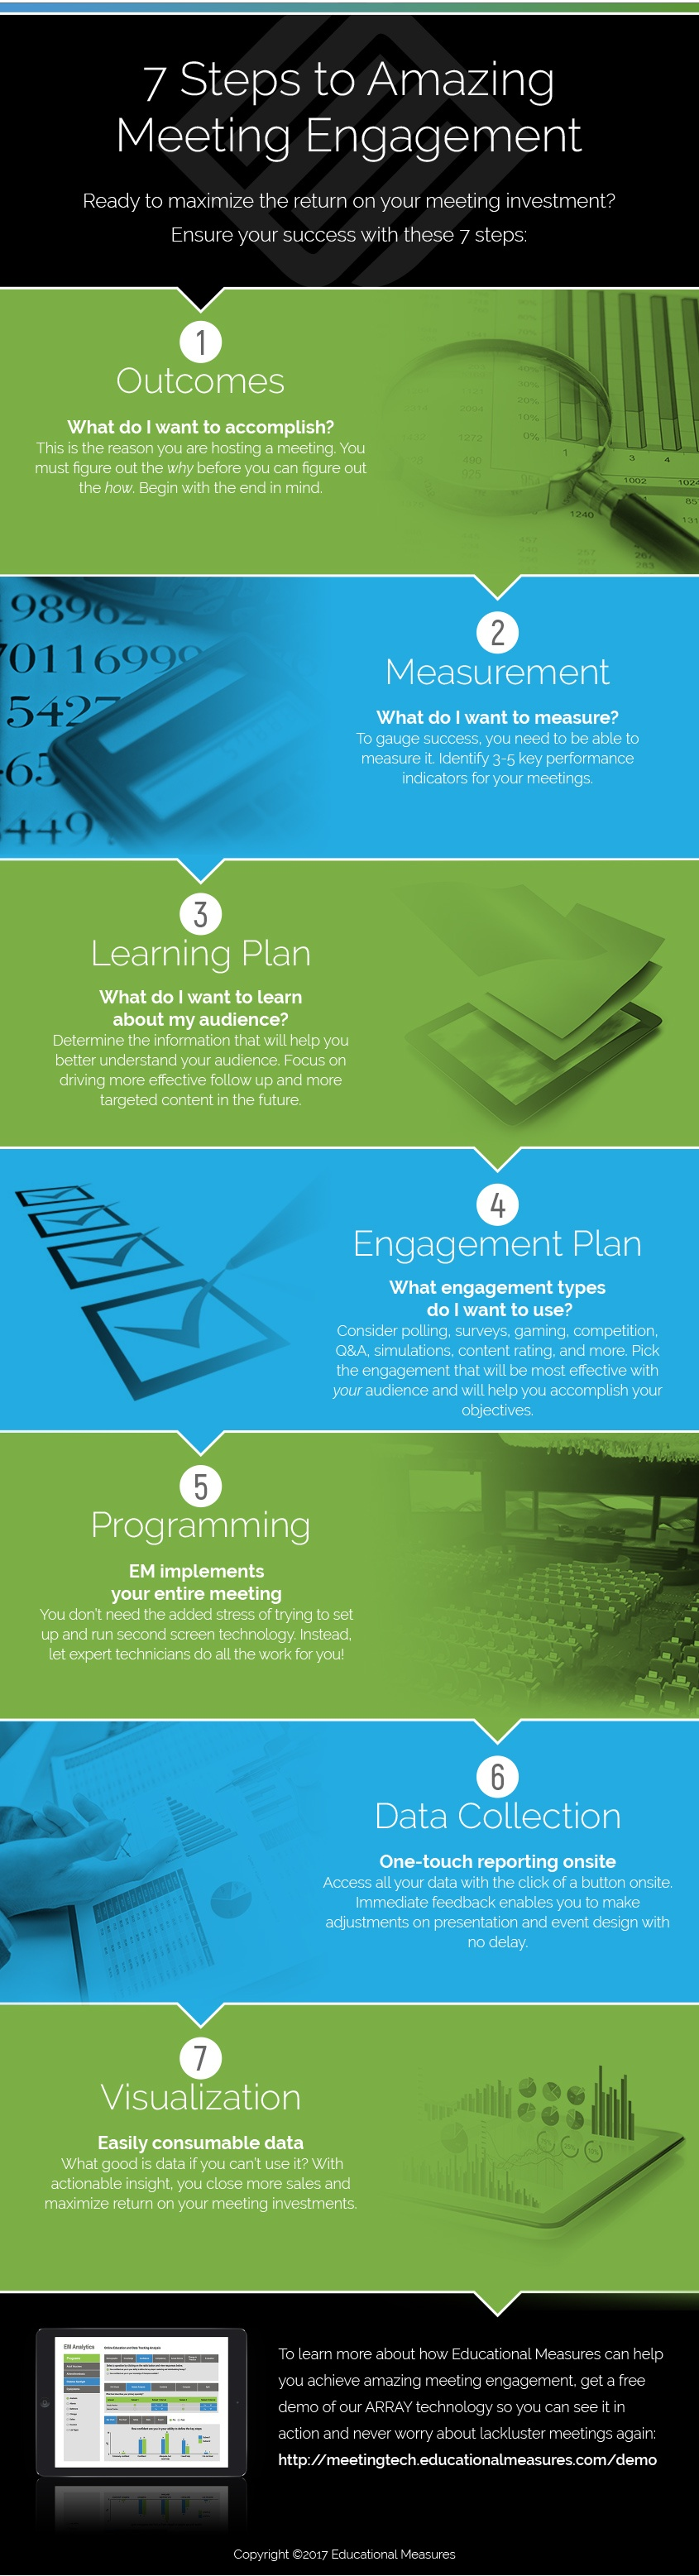 7 Steps to Amazing Meeting Engagement Infographic